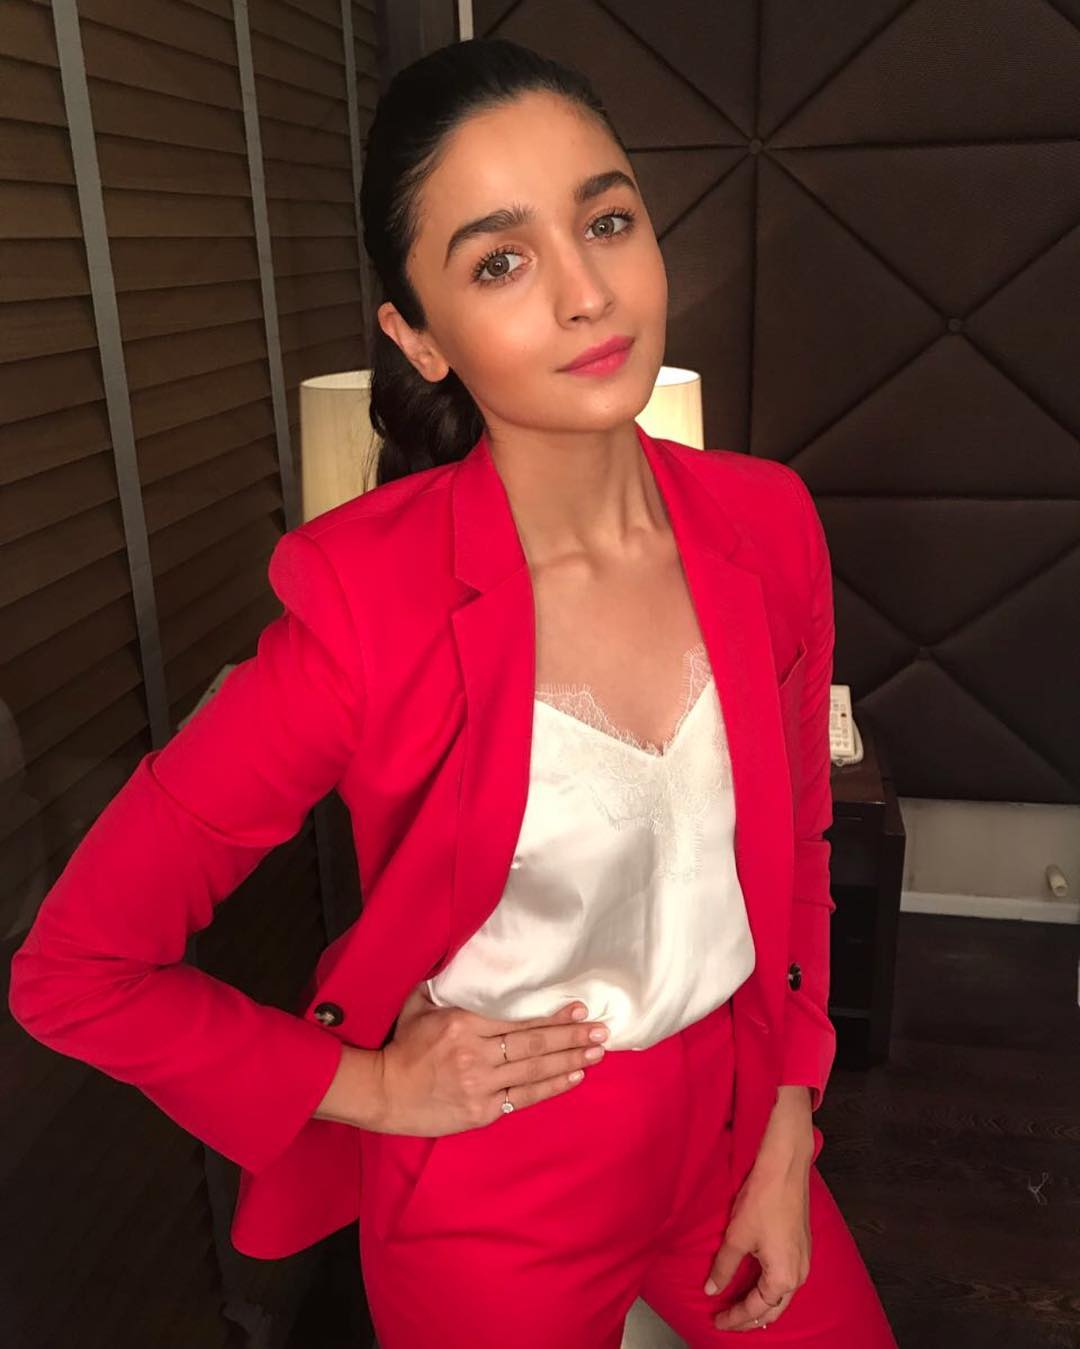 Alia Bhatt in blazing hot pink suit from Topshop